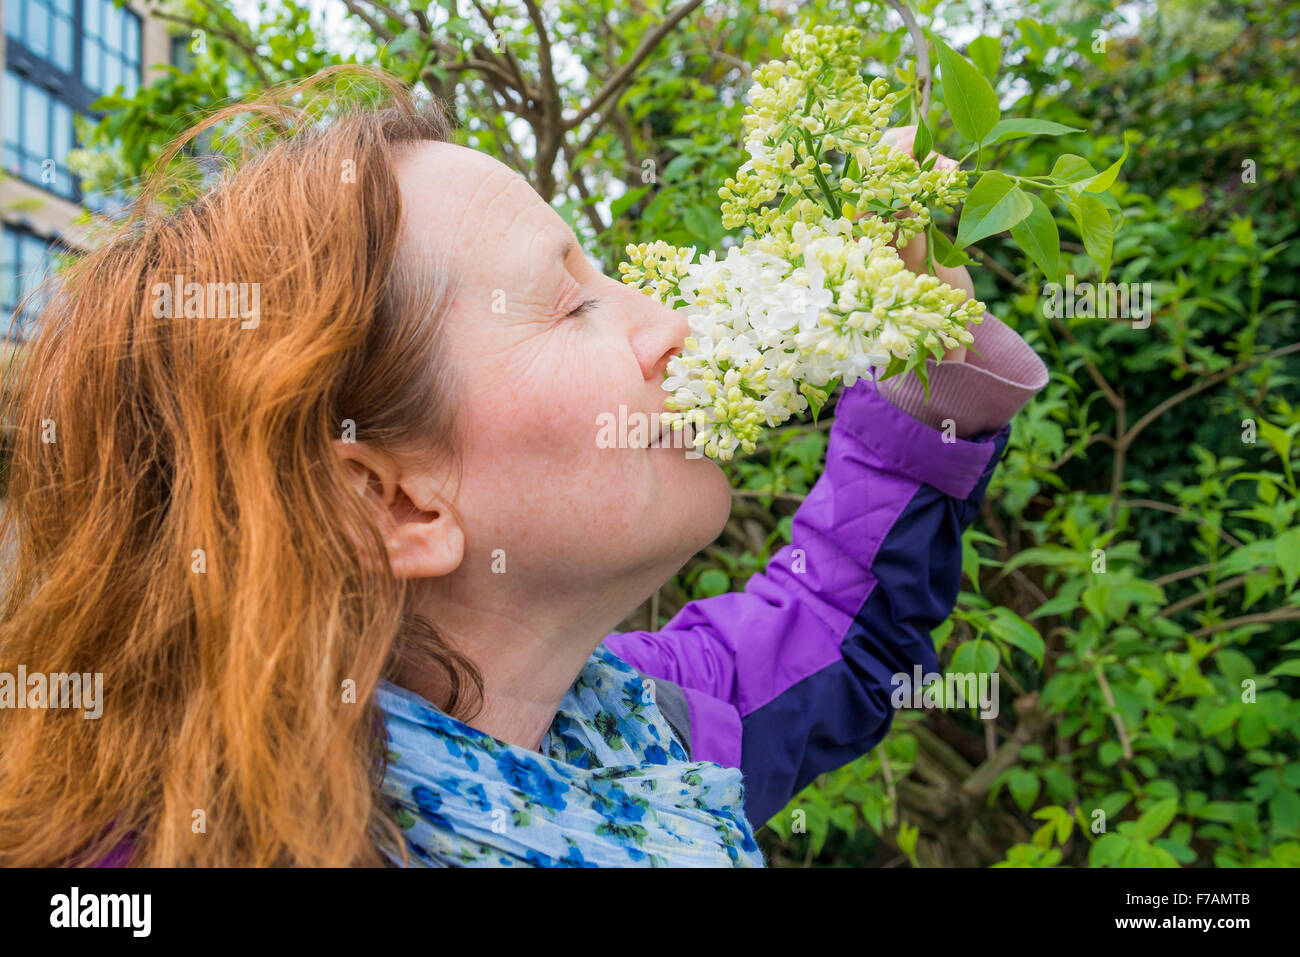 Woman smelling white lilac flowers - Stock Image